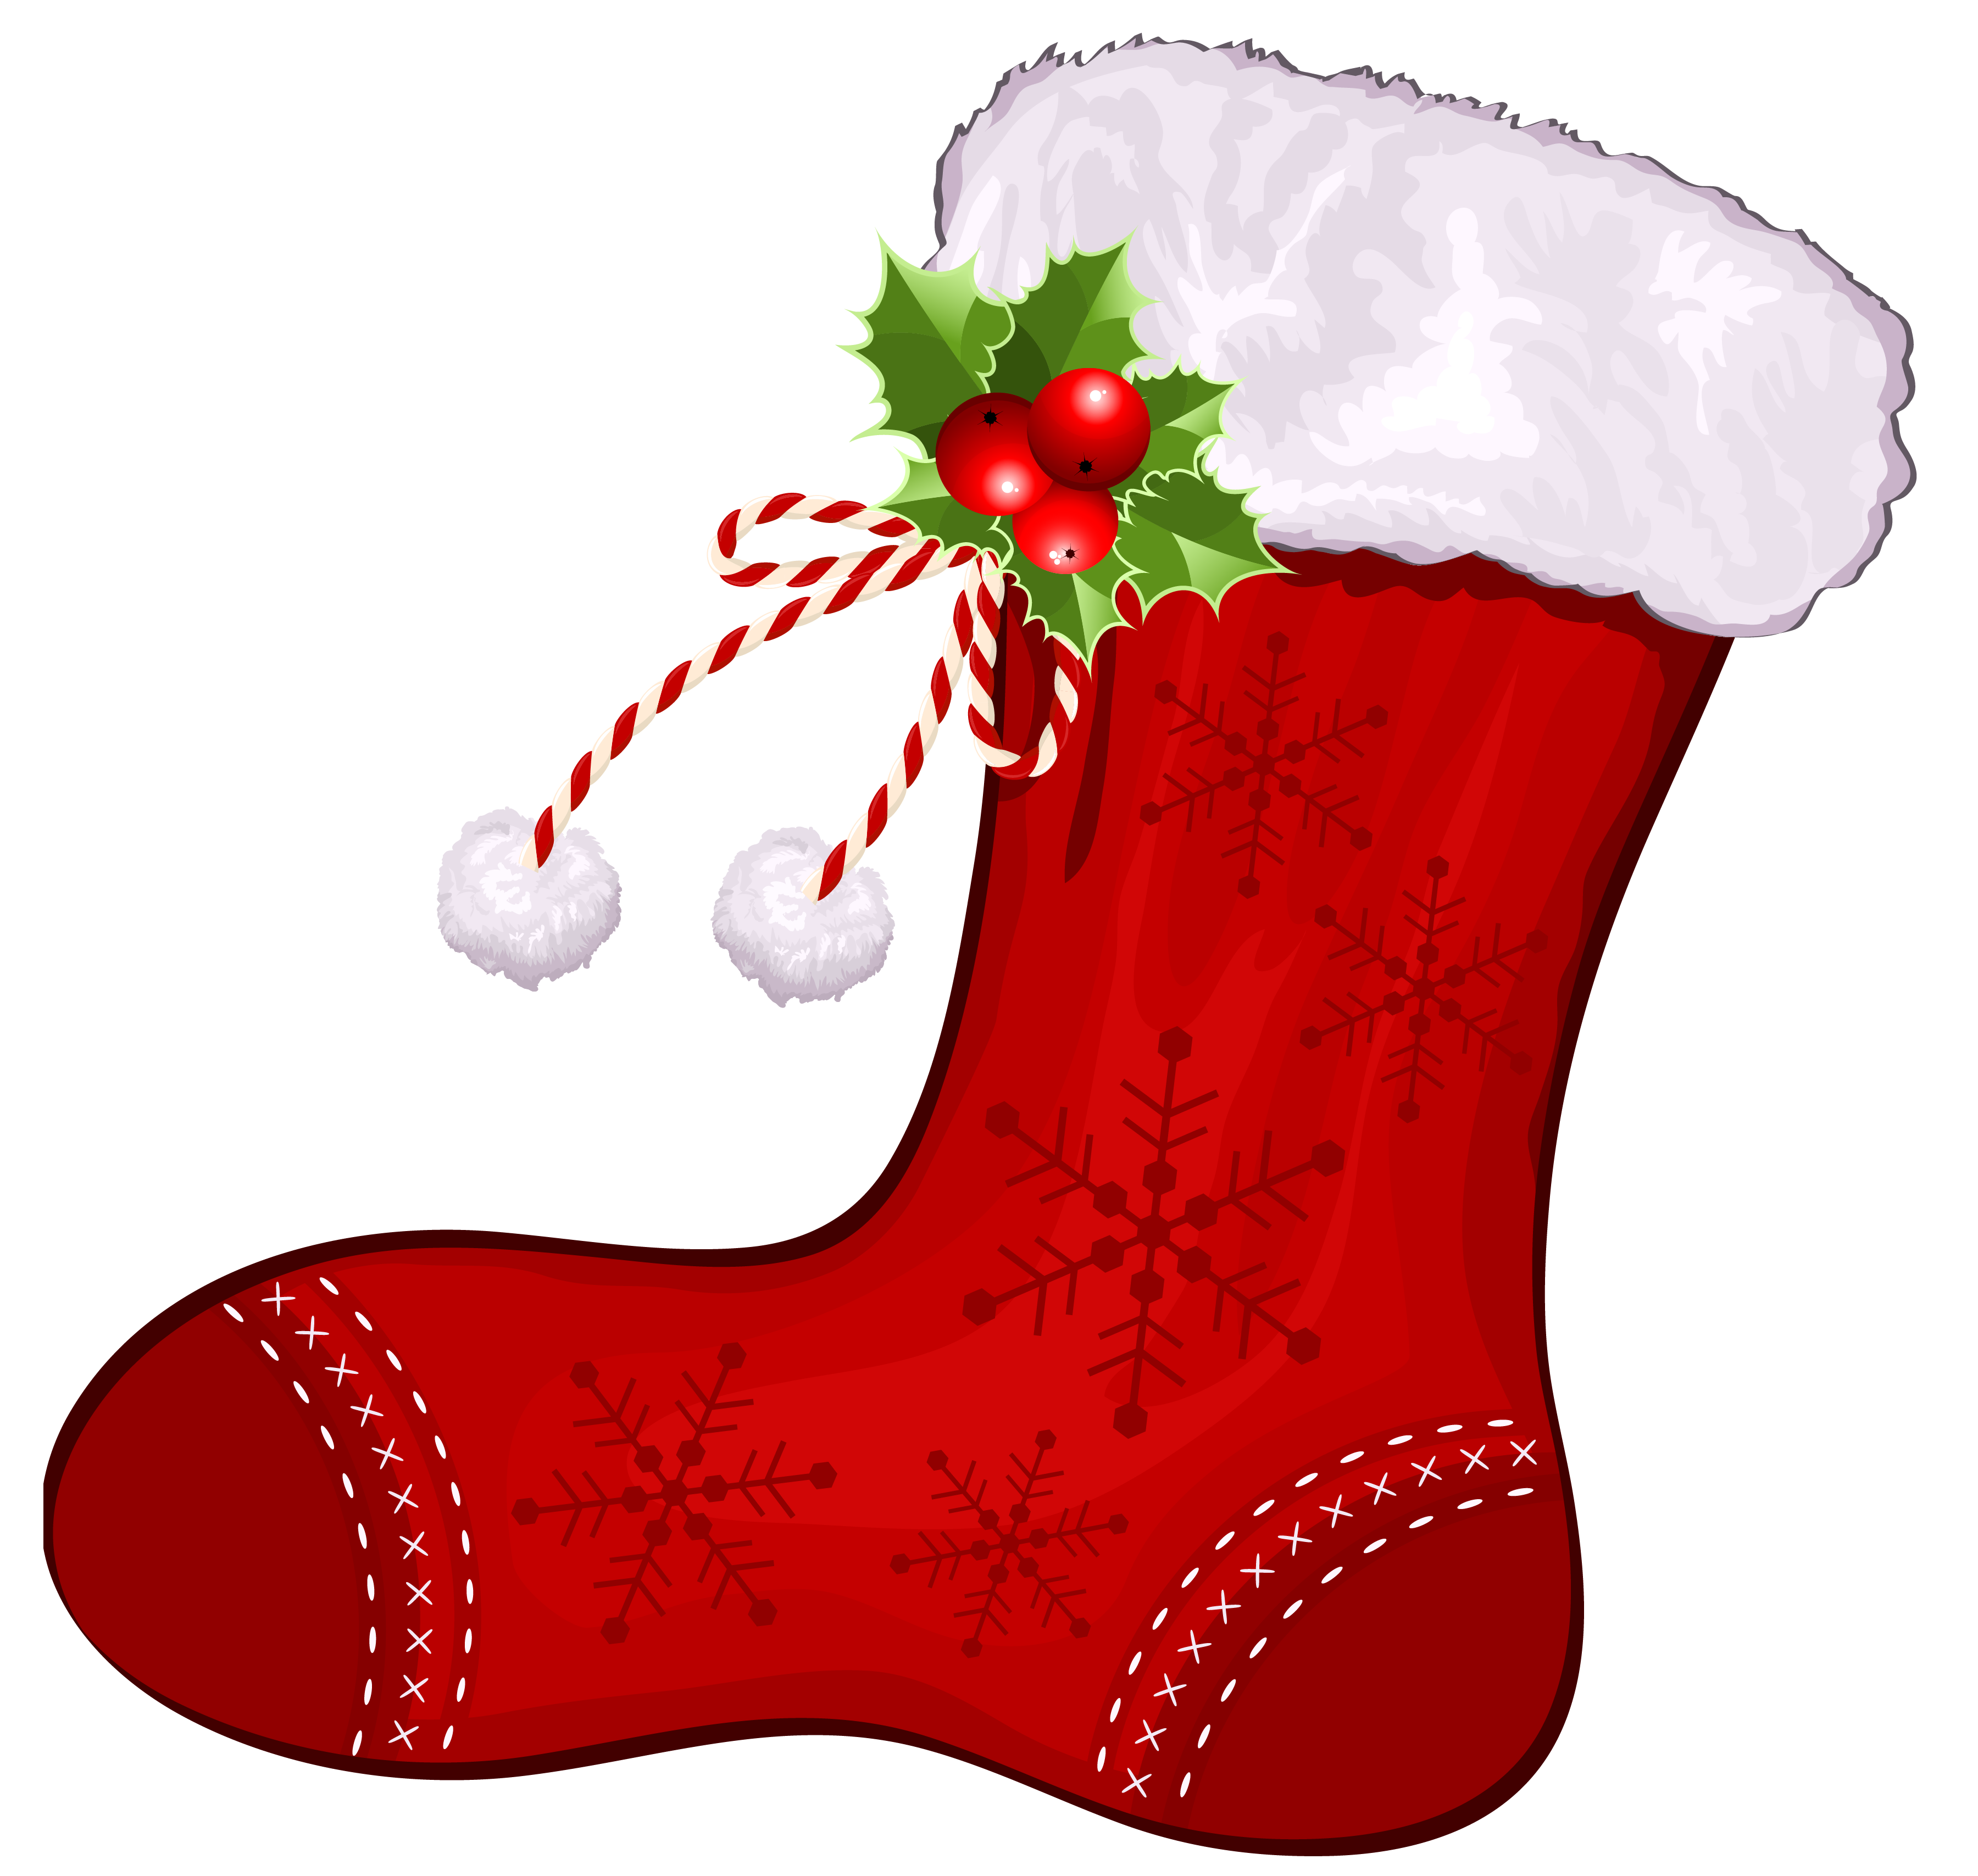 Exercise clipart christmas. Large transparent red stocking